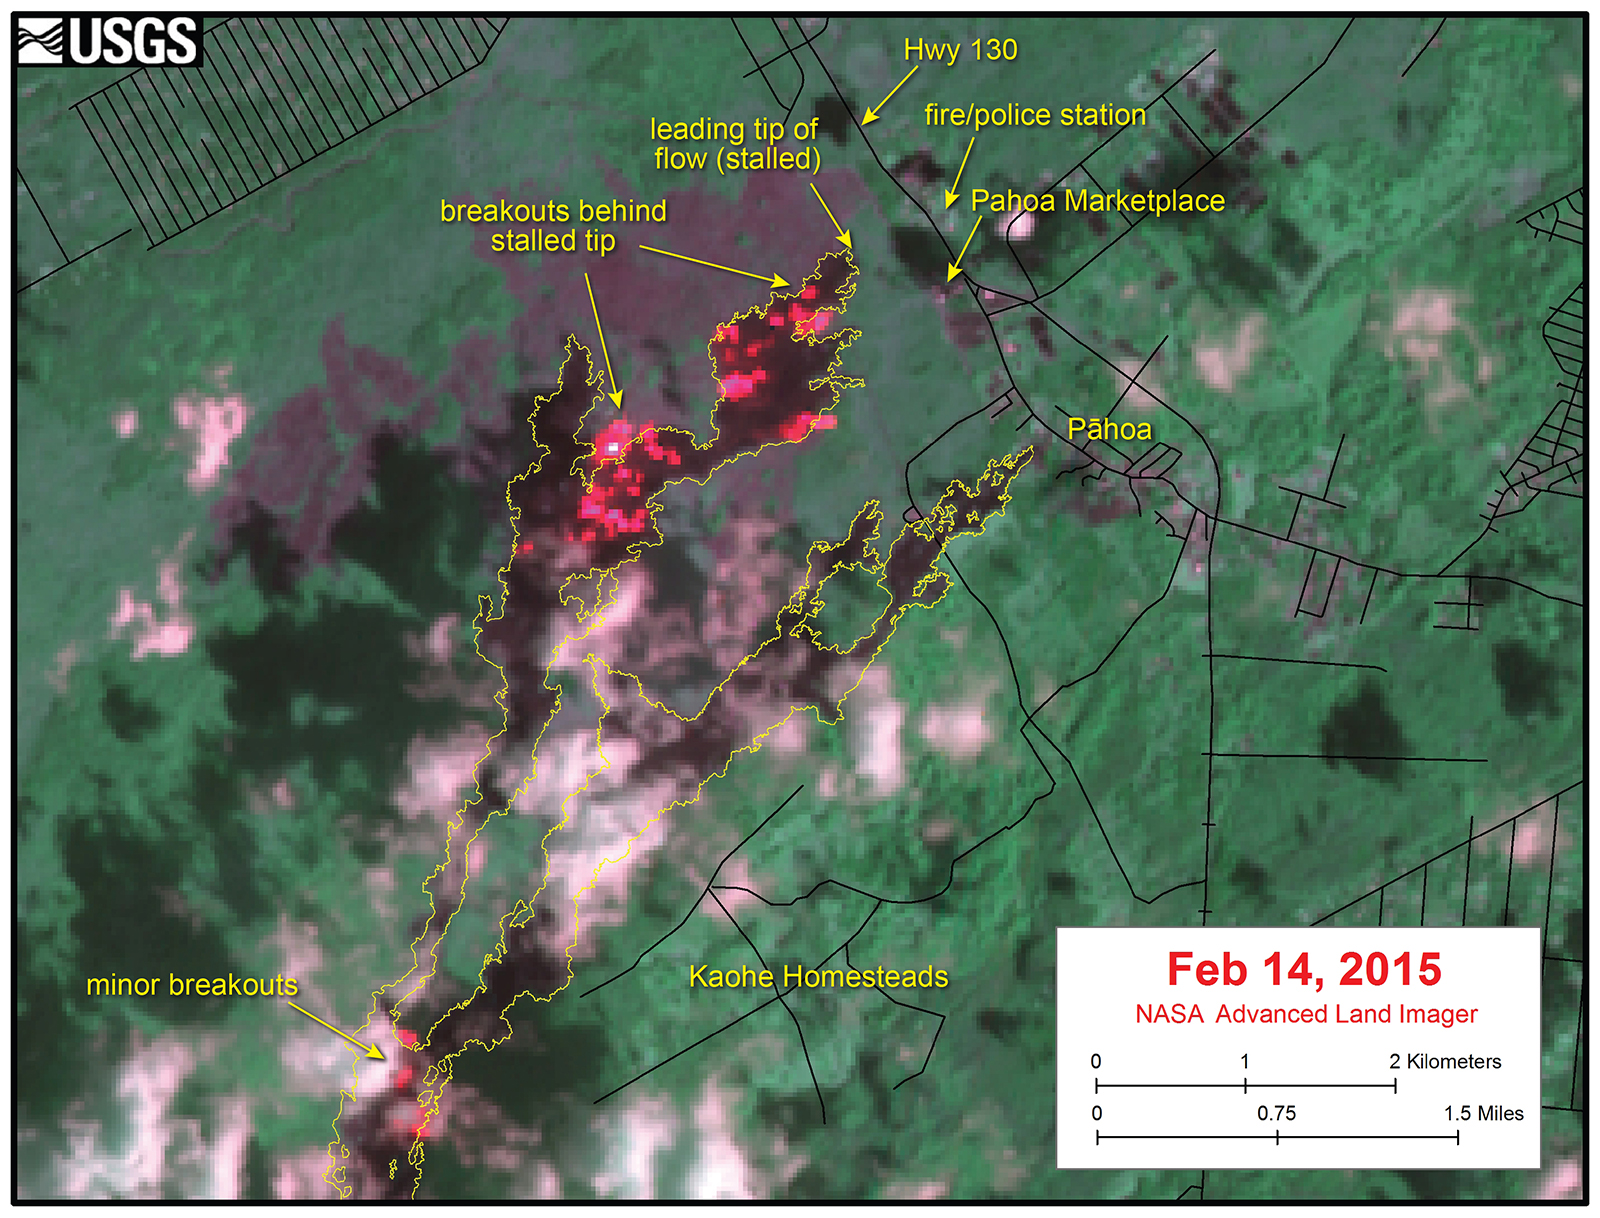 Advanced Land Imager true-color image (bands 10-8-9) over the distal portion of the June 27, 2014, lava flow on February 14, 2015, when the flow front threatened to cross the main highway and inundate a fire/police station. Red pixels show high temperatures (i.e., high values in the 2-micron band 10 channel) indicative of active lava breakouts.  Images such as this were useful in identifying the main areas of activity on the lava flow field. The yellow line is the mapped lava flow margin, and black lines are roads. North is oriented toward the top of the image.